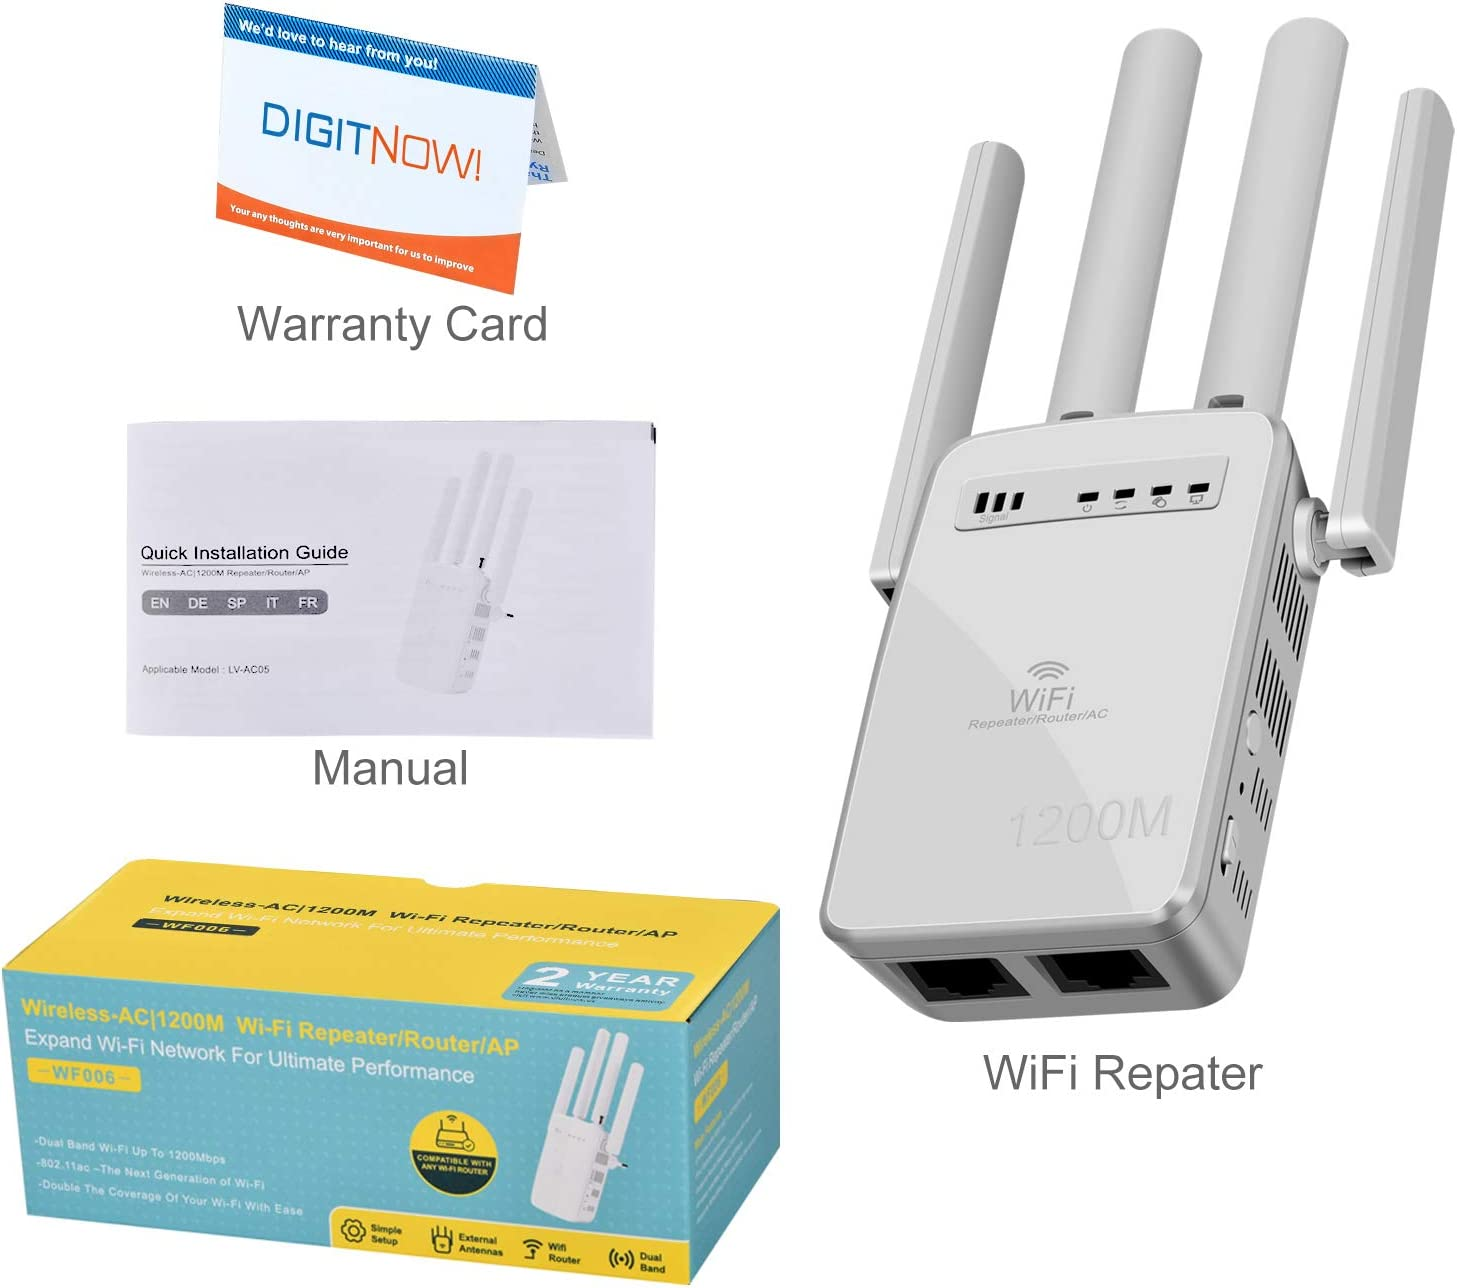 2 LAN//Ethernet Wireless Repeater Coverage to 3000sq.ft /& 32 Devices WiFi Range Extender 1200 Mbps,2.4 /& 5GHz Dual Band Network,Signal Booster with WPS Button for WiFi Internet Connection